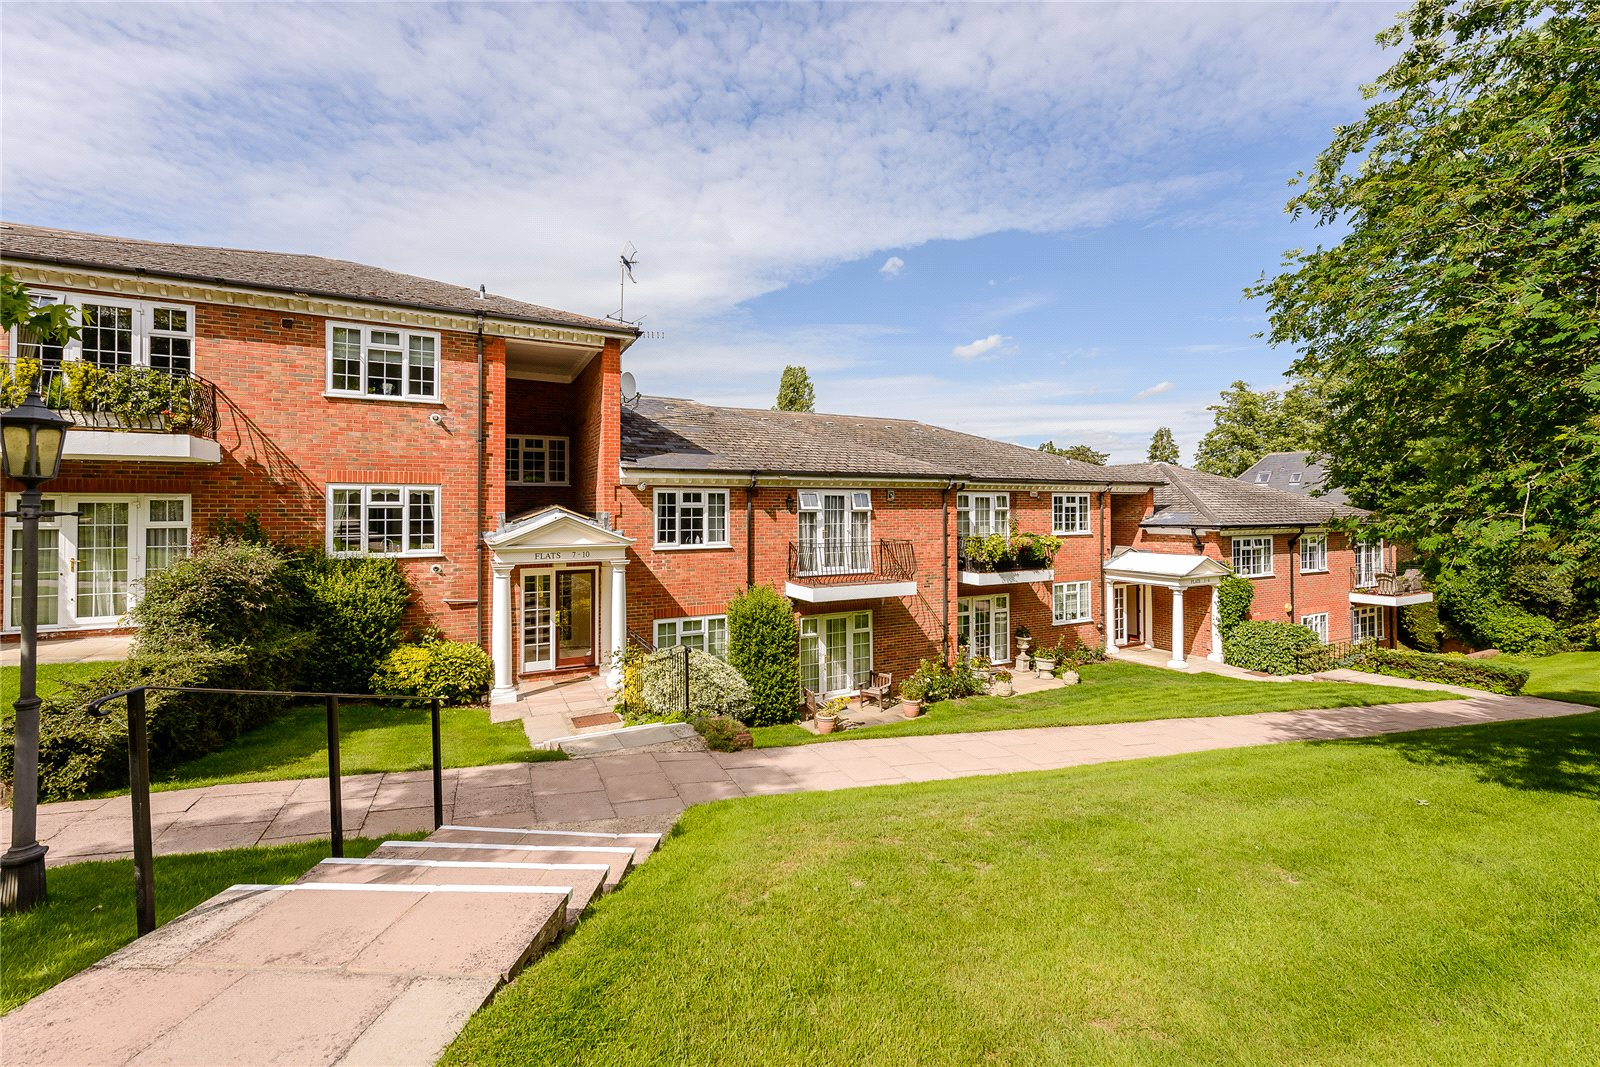 公寓 为 销售 在 Penn Haven, 3 Oak End Way, Gerrards Cross, Buckinghamshire, SL9 Gerrards Cross, 英格兰